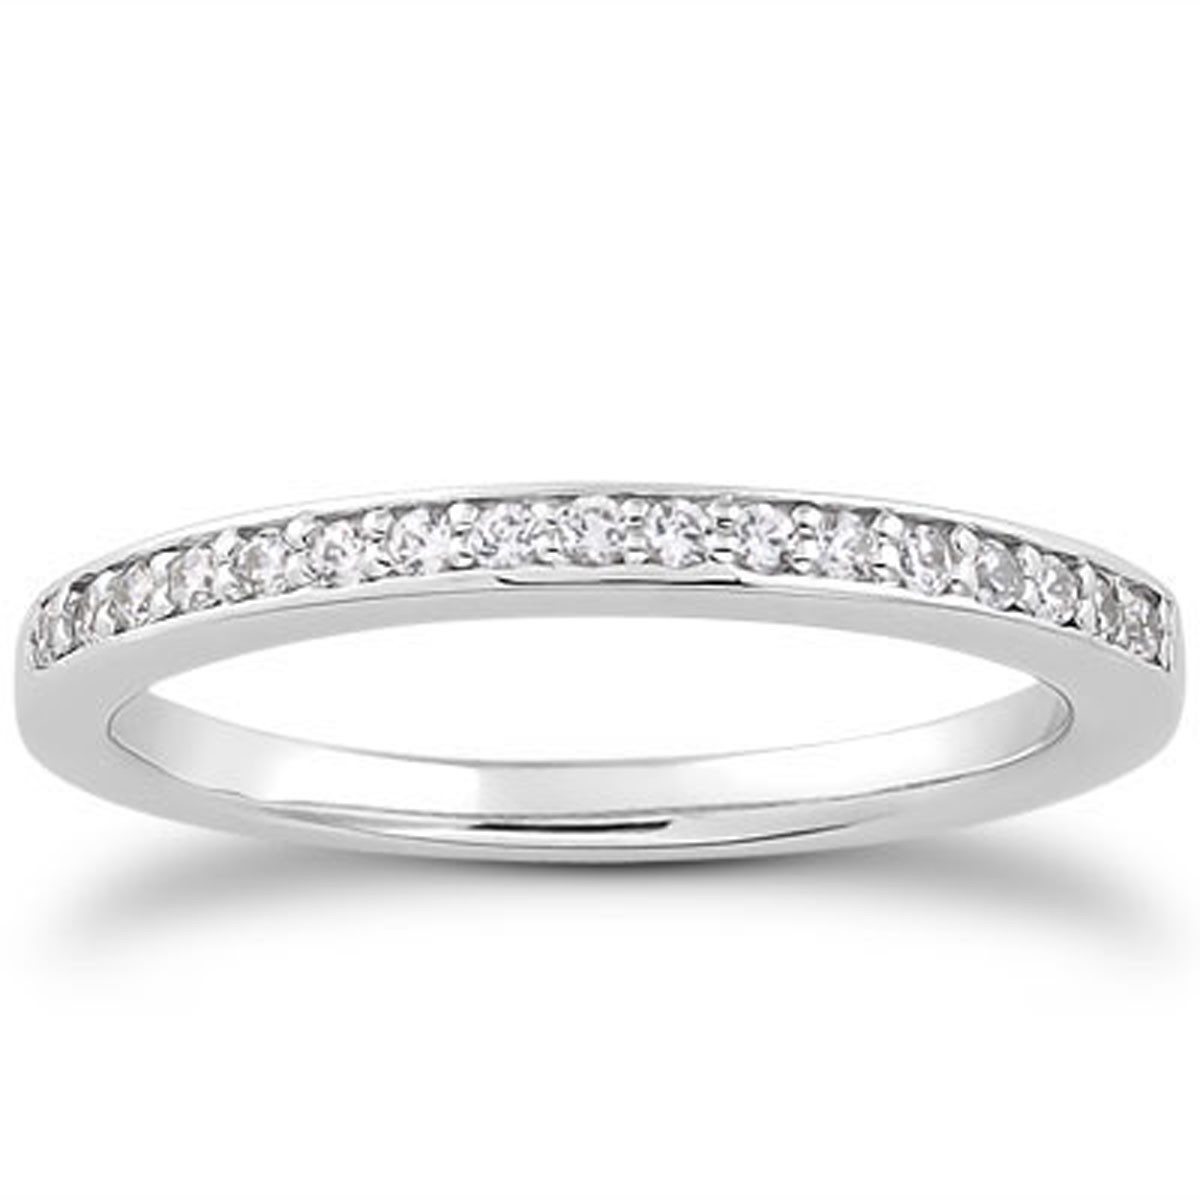 Micro-pave Diamond Wedding Ring Band in 14K White Gold - Richard ...